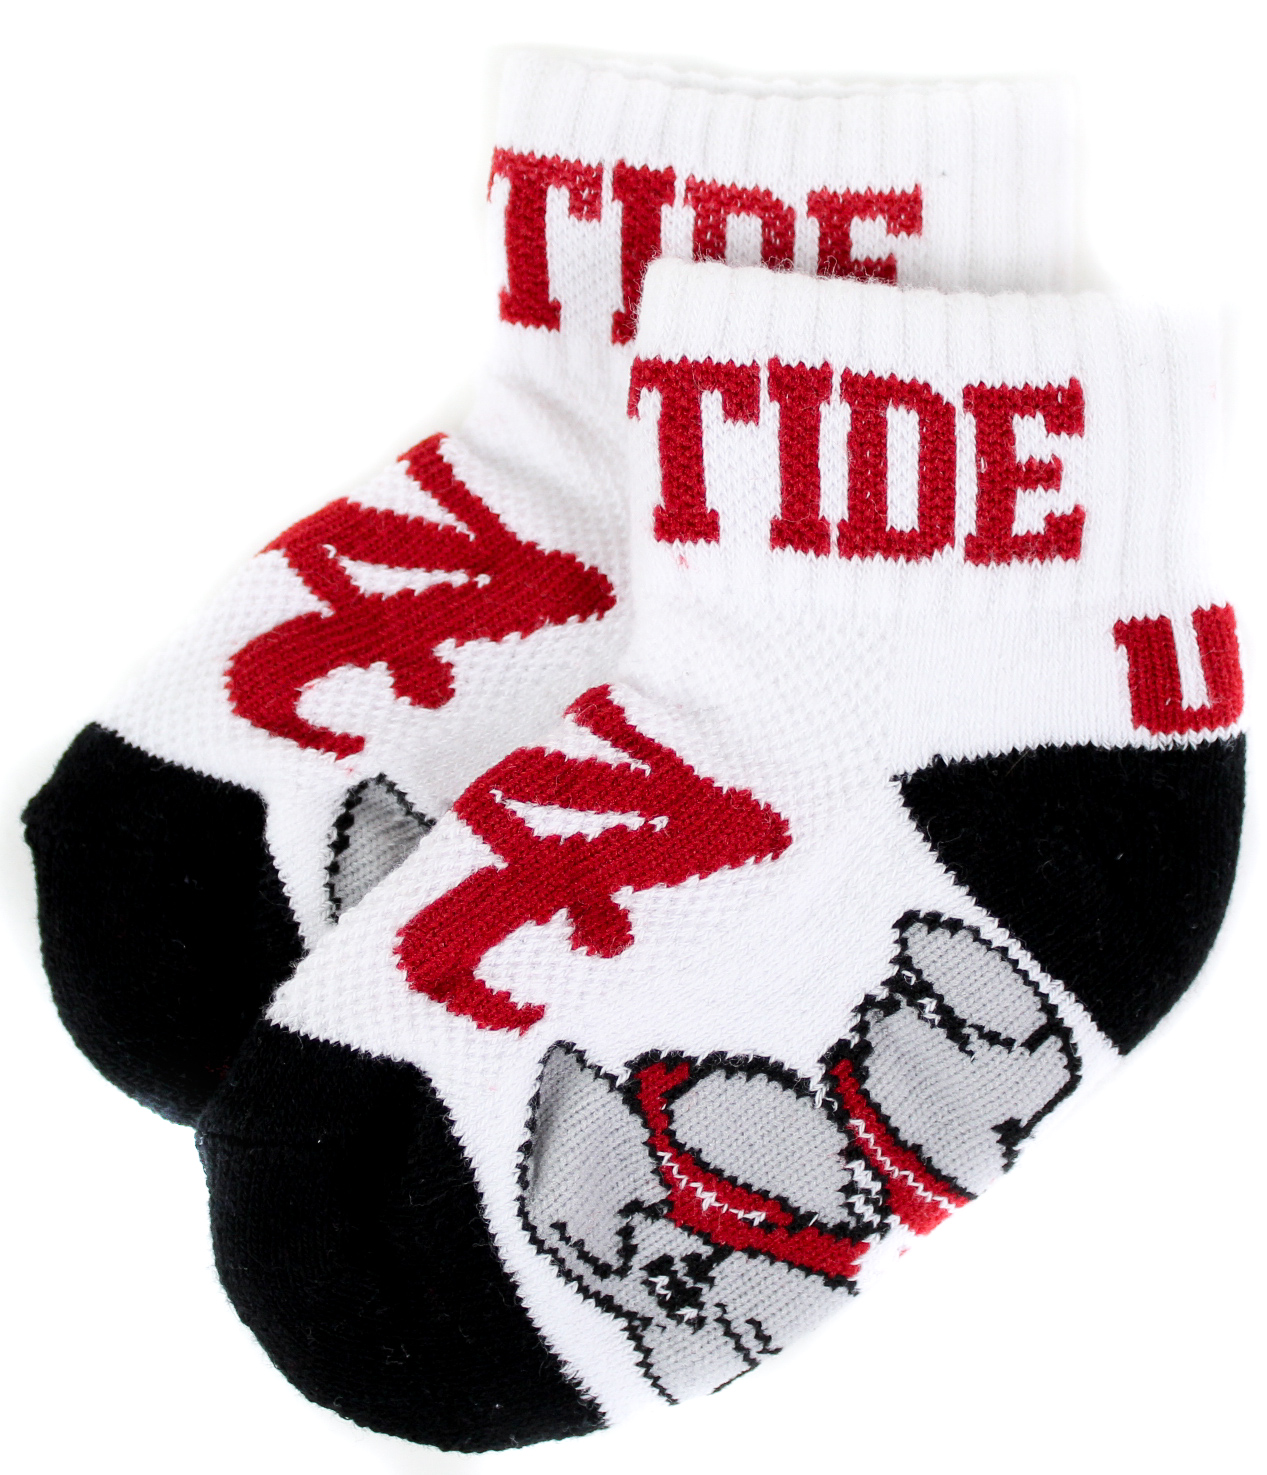 Donegal Bay NCAA Wisconsin Badgers Unisex Wisconsin Badgers White Quarter Red Heel-Toe SockWisconsin Badgers White Quarter Red Heel-Toe Sock White One Size